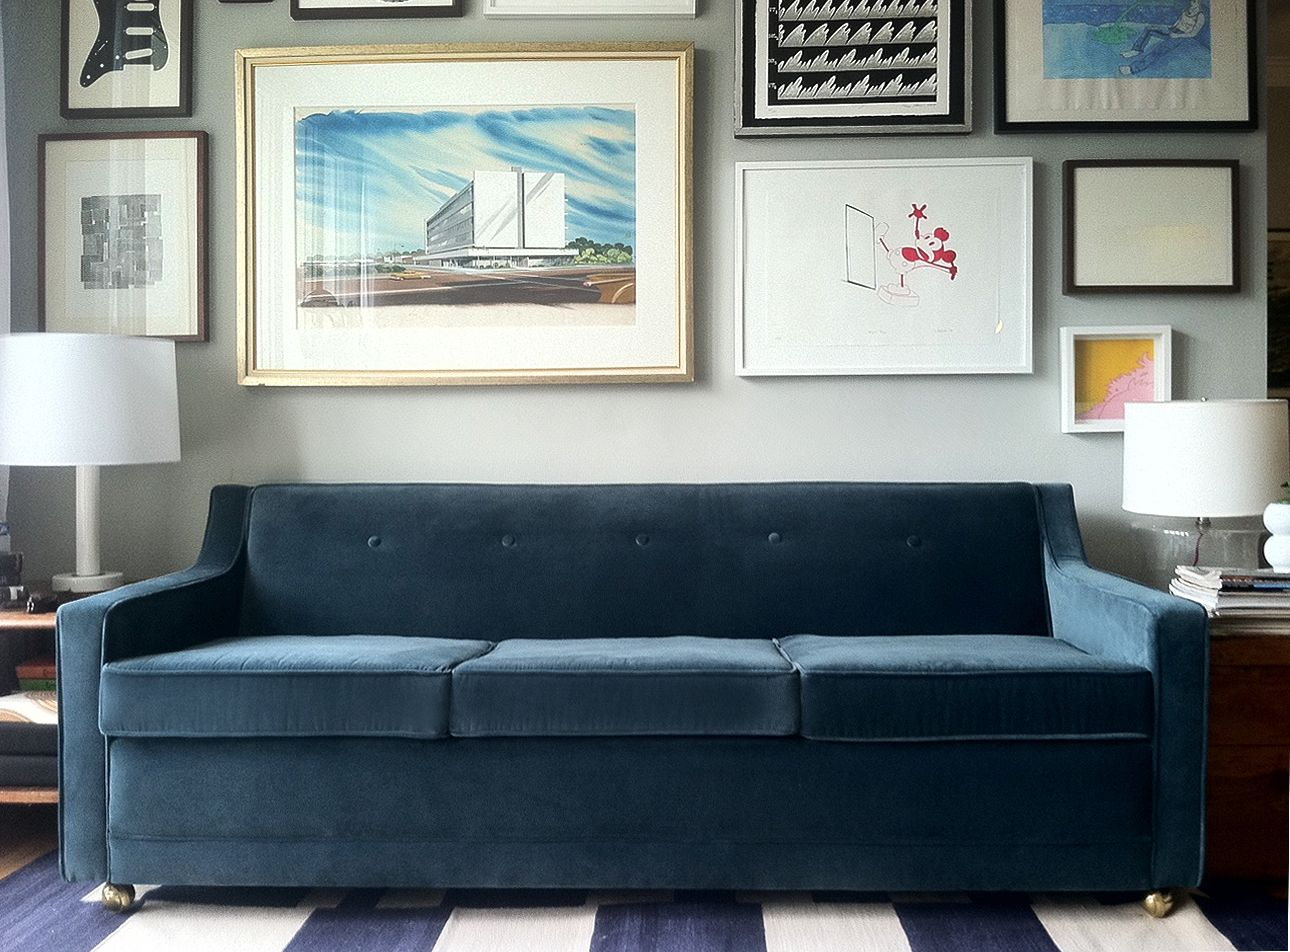 Attractive Yummy, Peacock Blue Velvet Couch   Reupholstered From Disgusting Before.  Yeah, Pretty Sure Iu0027ll Actually Pay Someone To Reupholster My Next Couch.